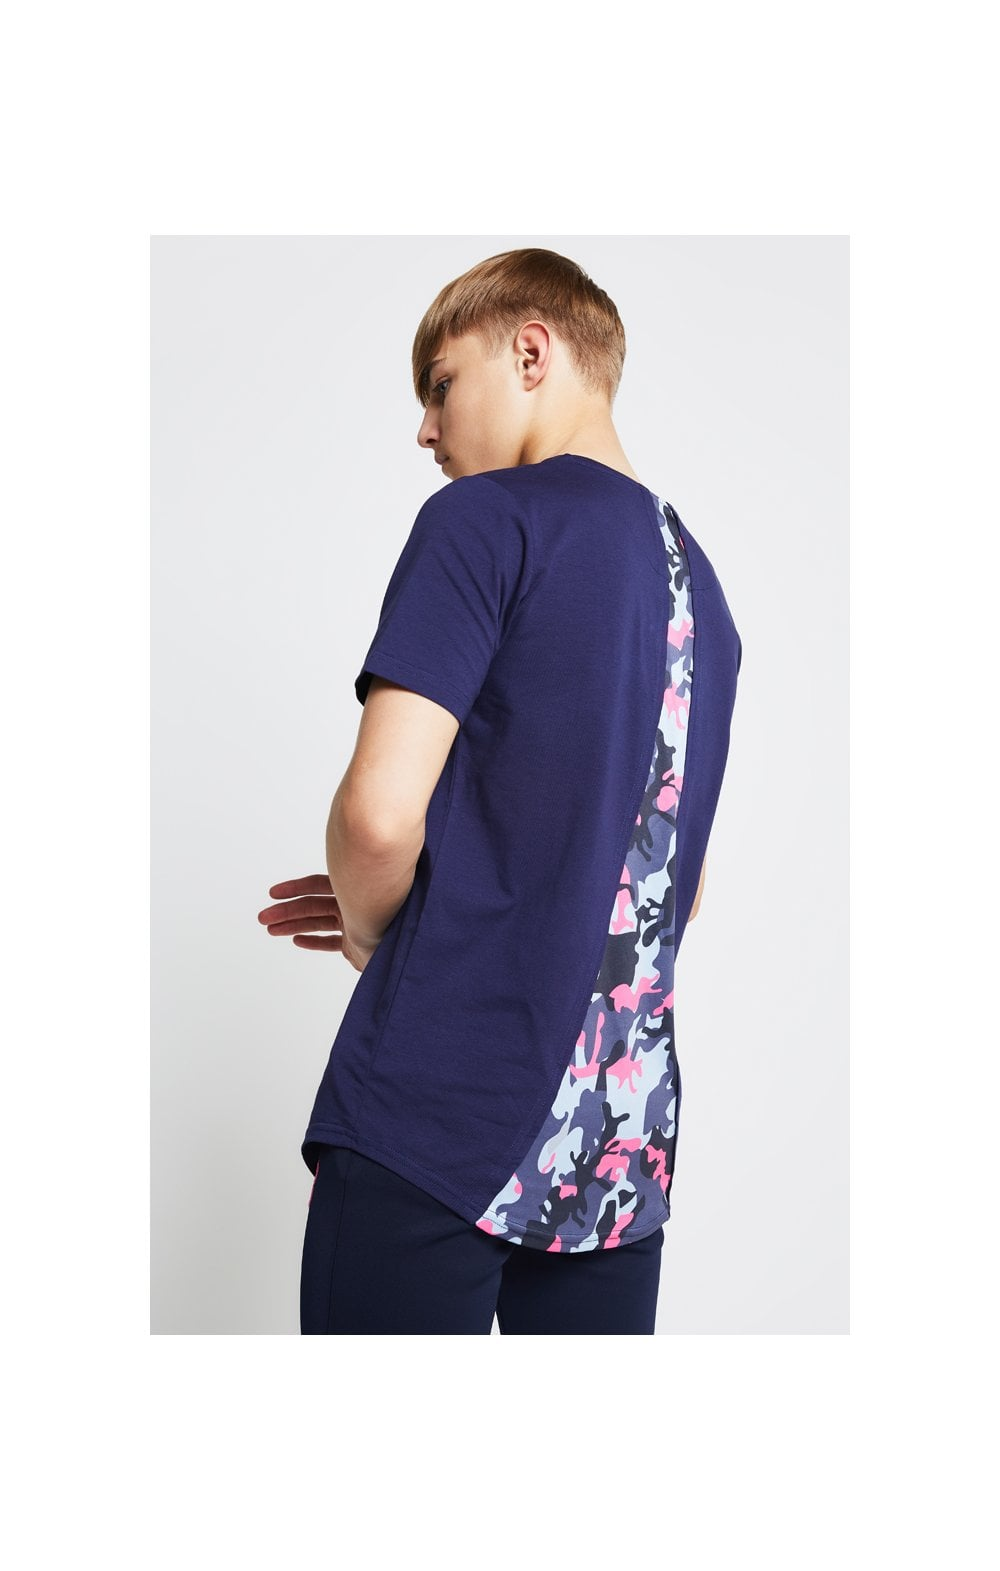 Load image into Gallery viewer, Illusive London Racer Back Tee – Navy & Neon Pink Camo (2)